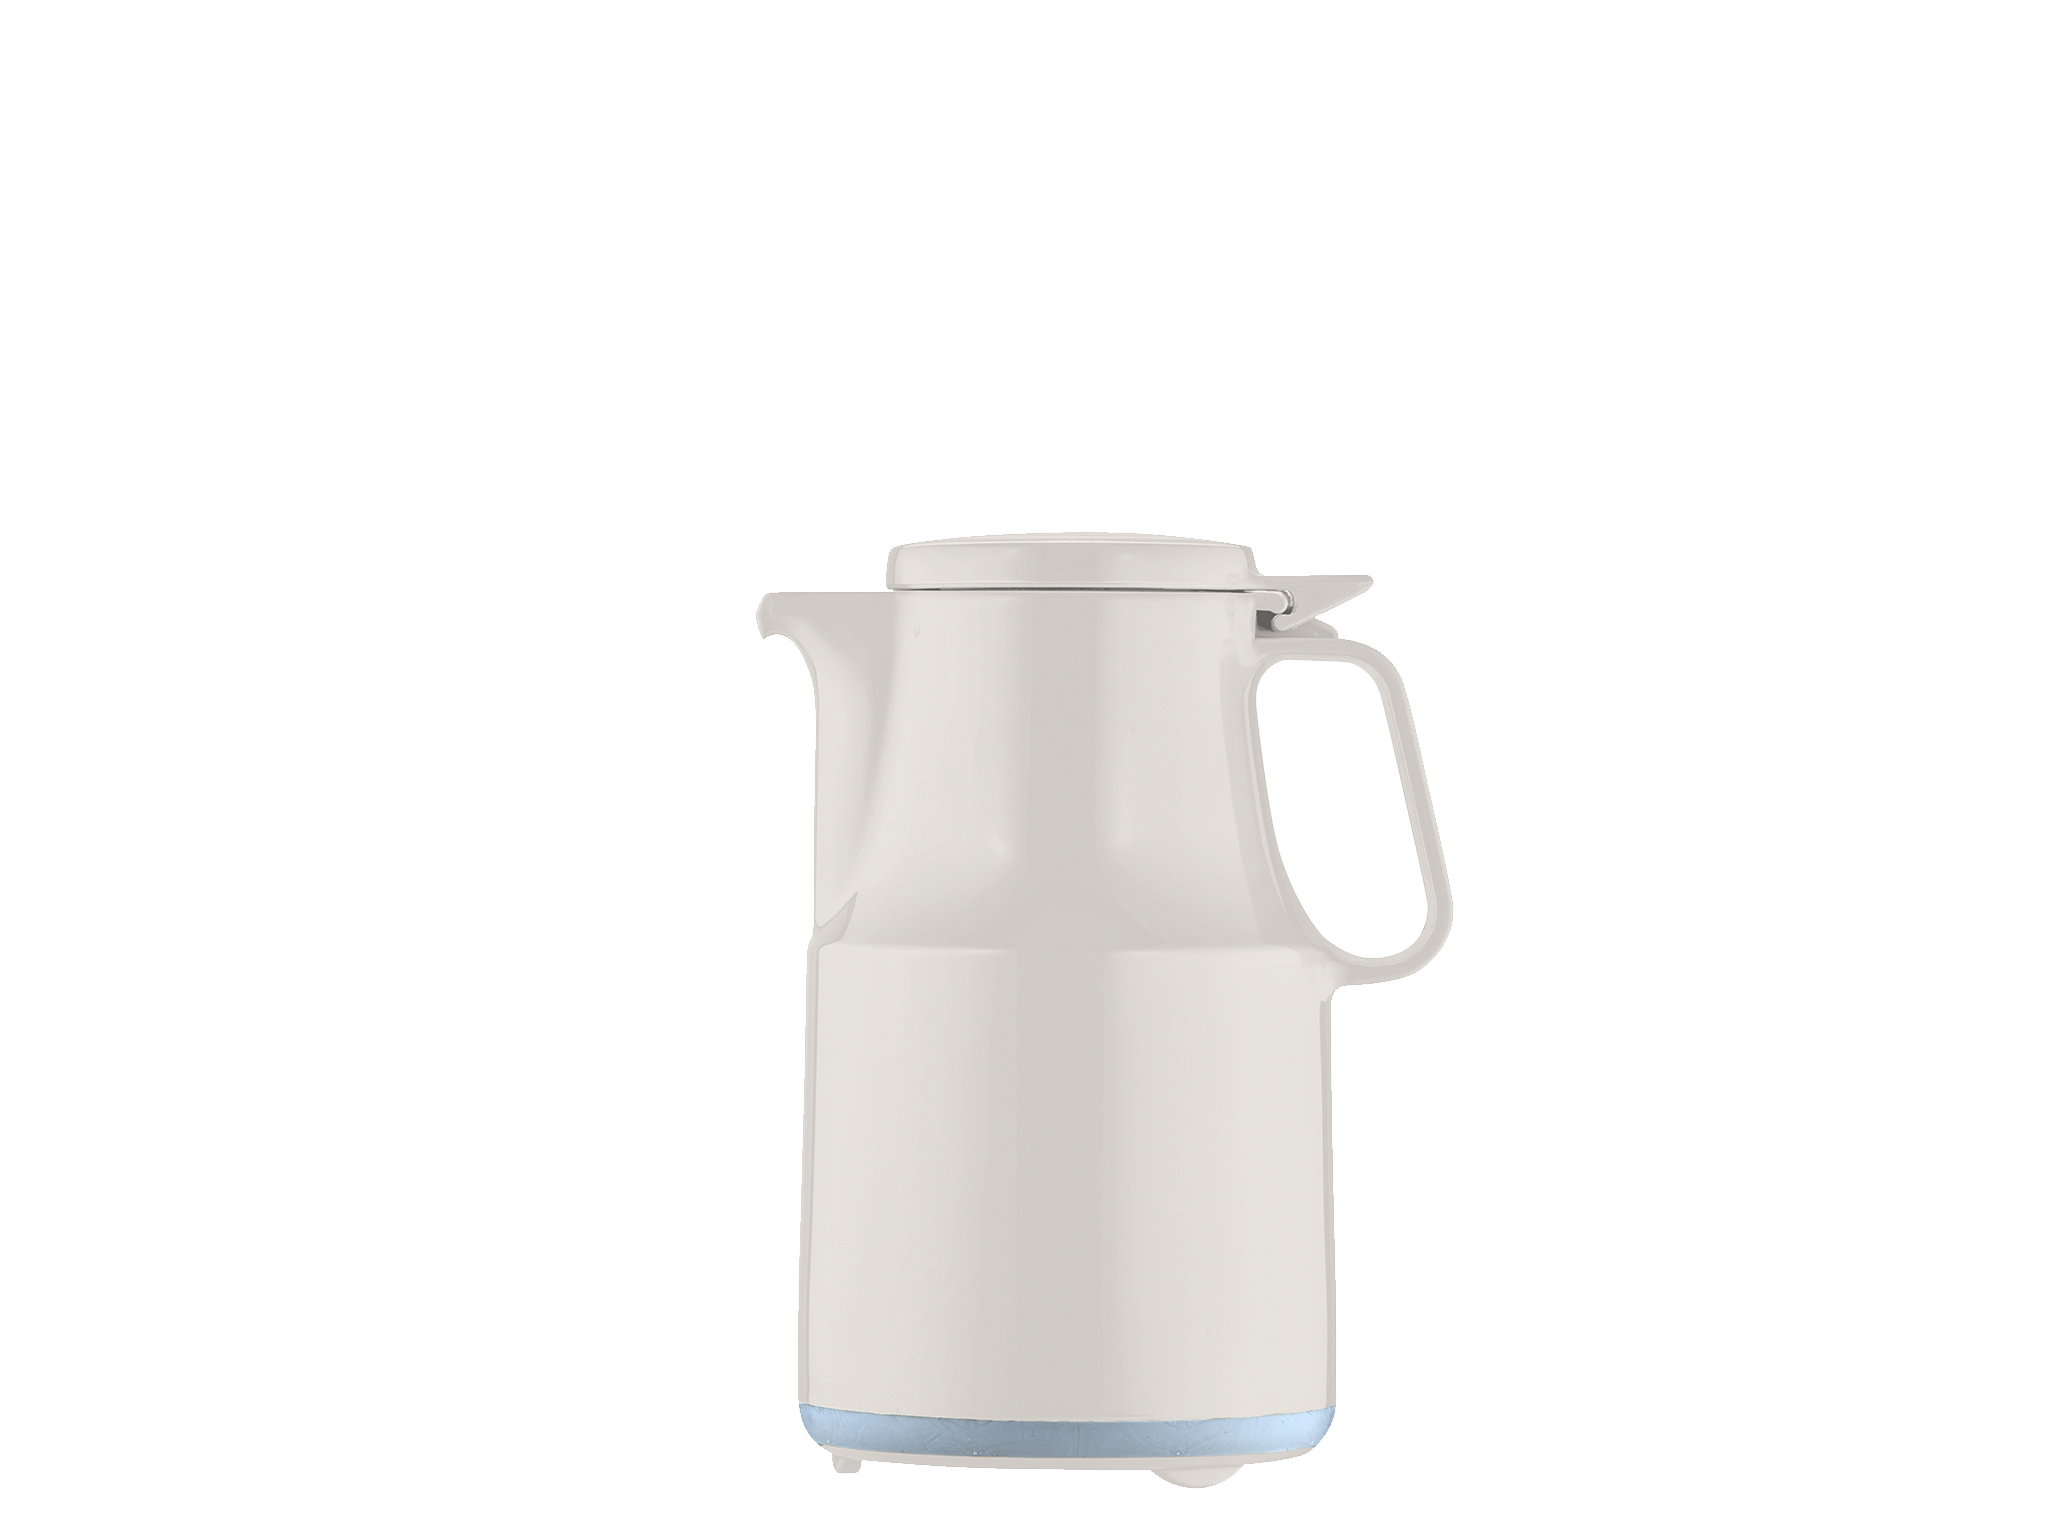 7362-001 - Vacuum carafe unbreakable white 0.6 L THERMOBOY S+ - Helios